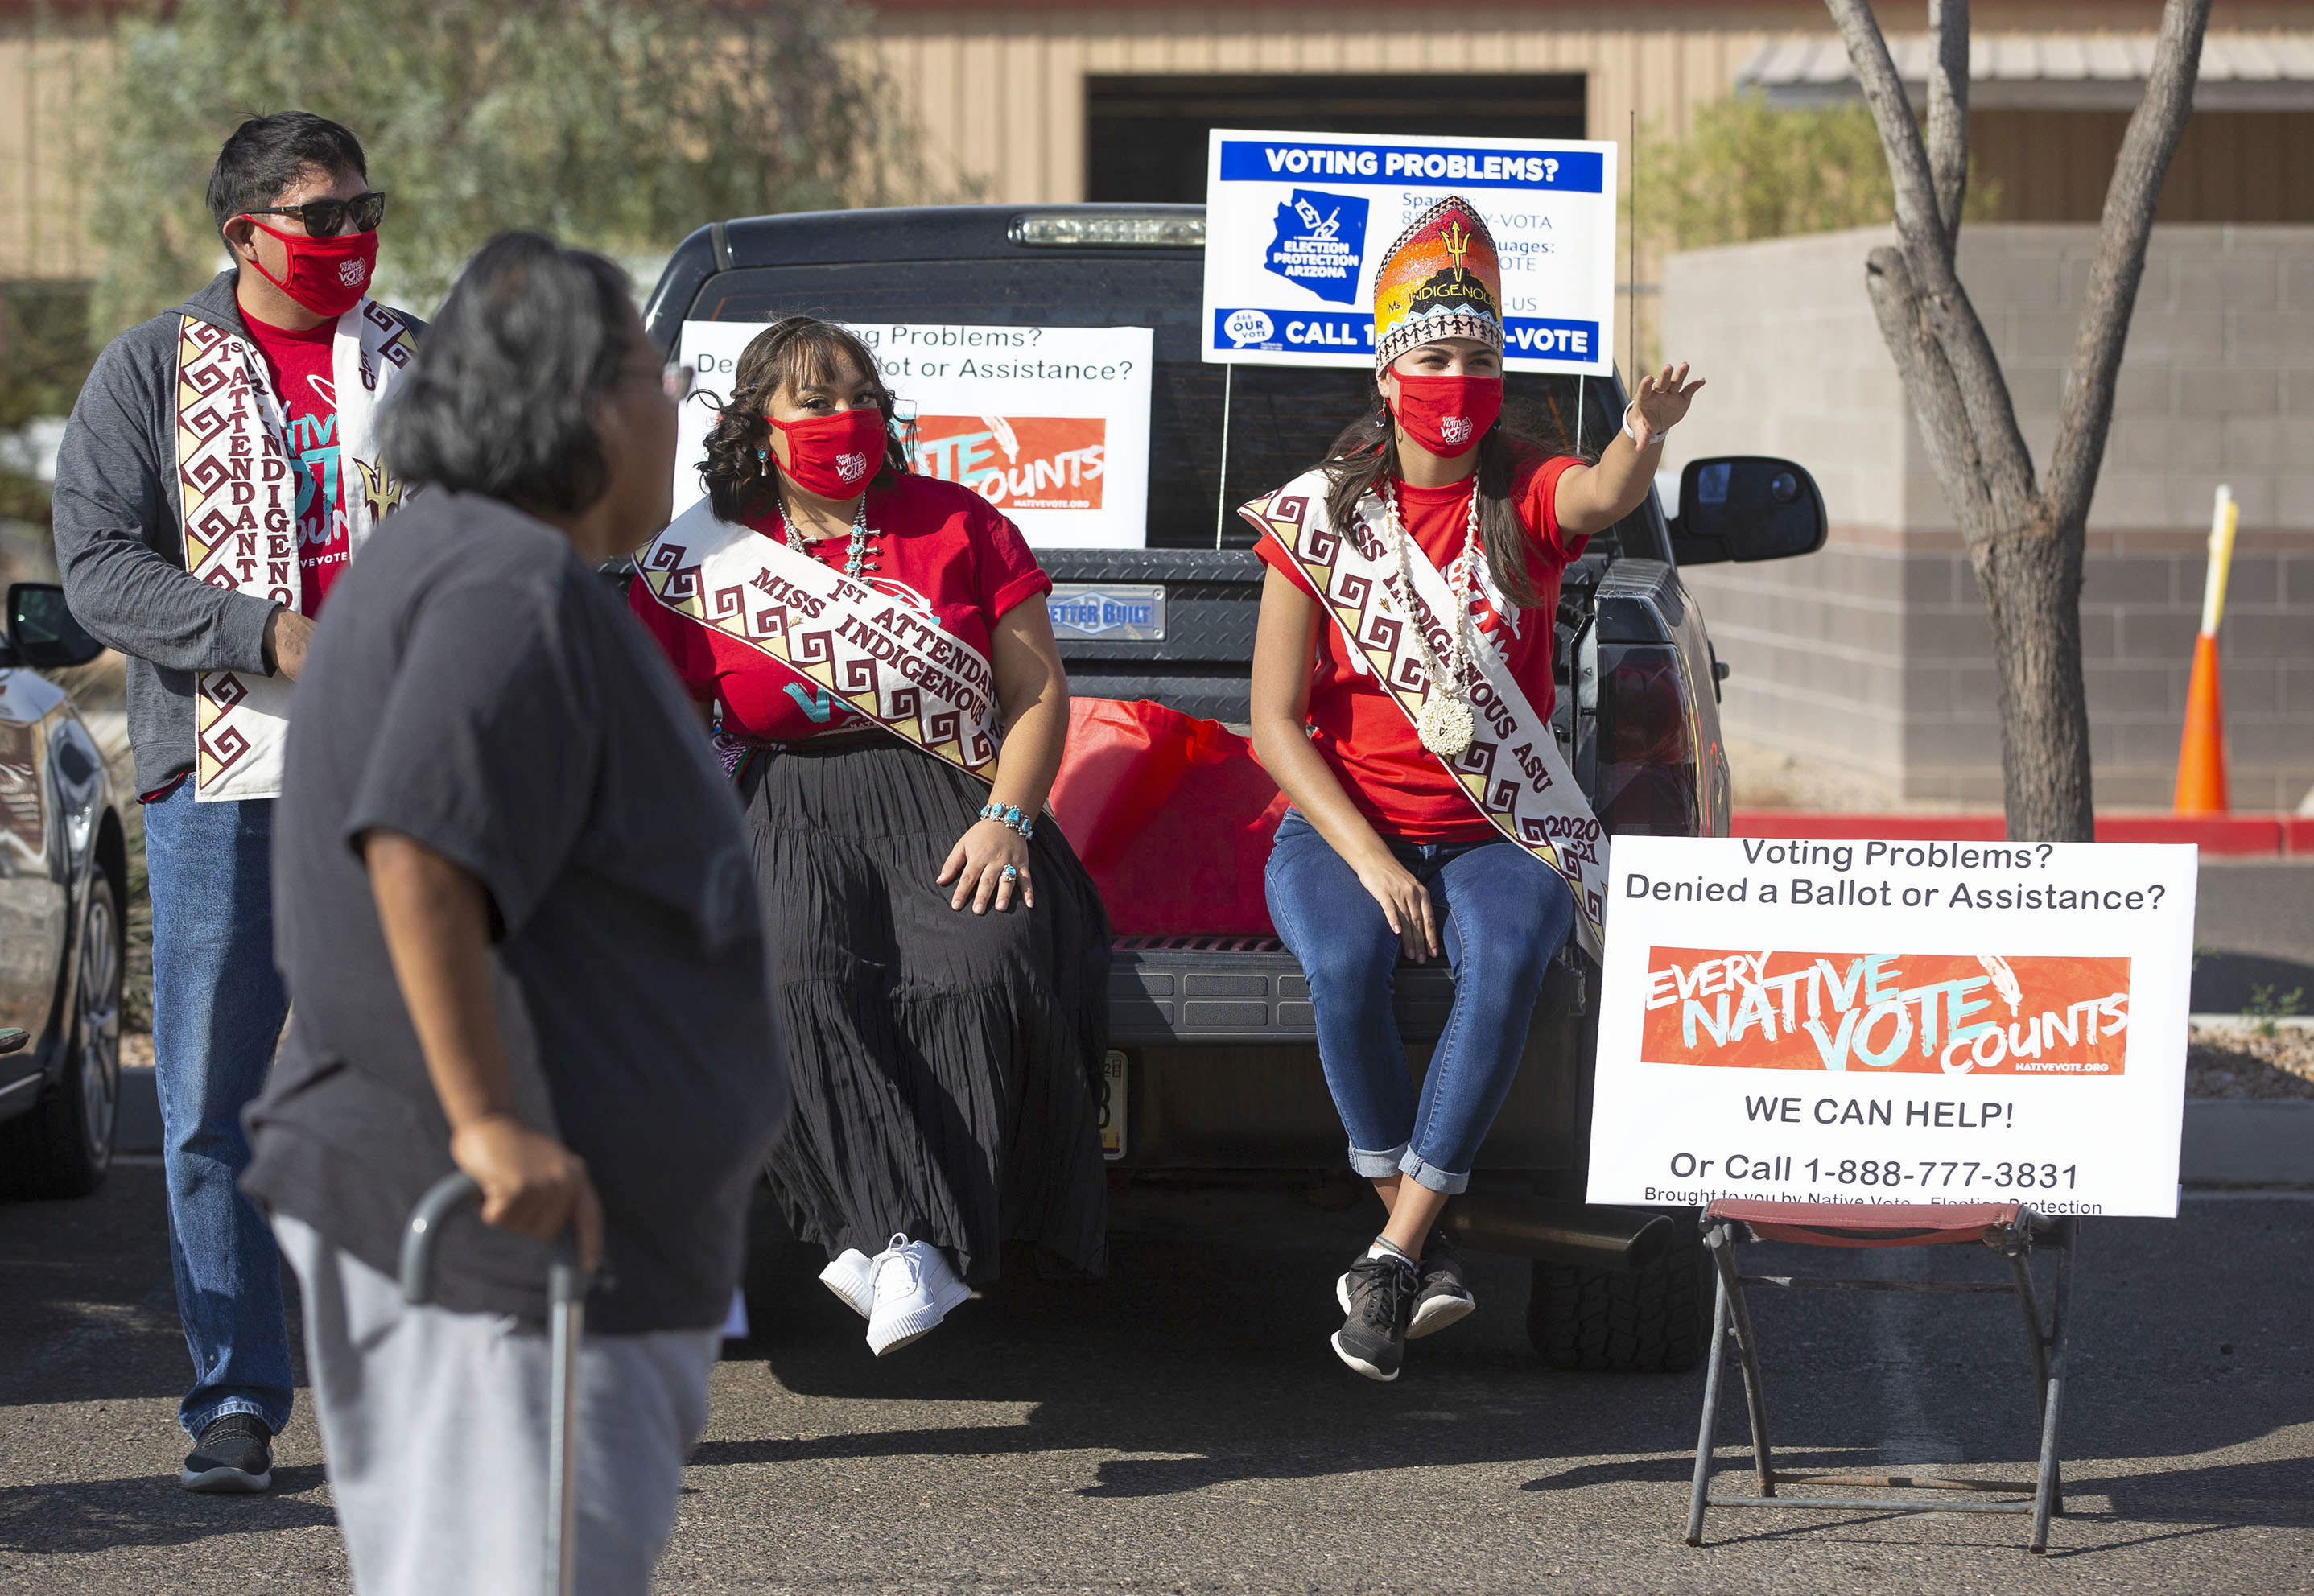 Women wearing banners and face masks sit on a pickup and direct a woman with a cane